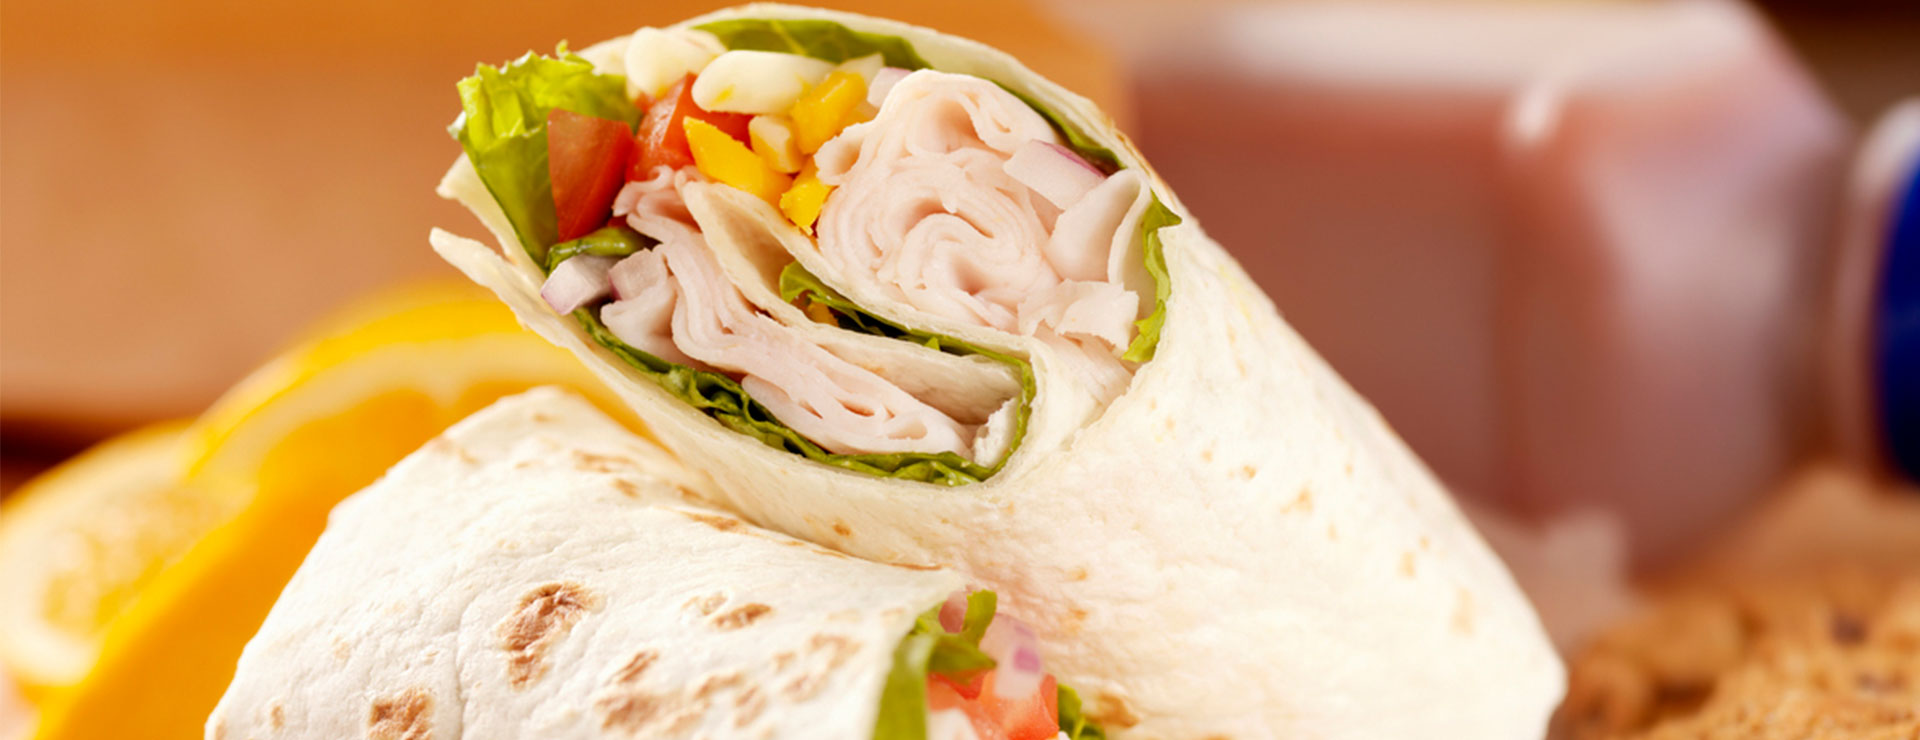 lunch meat with vegetable wraps